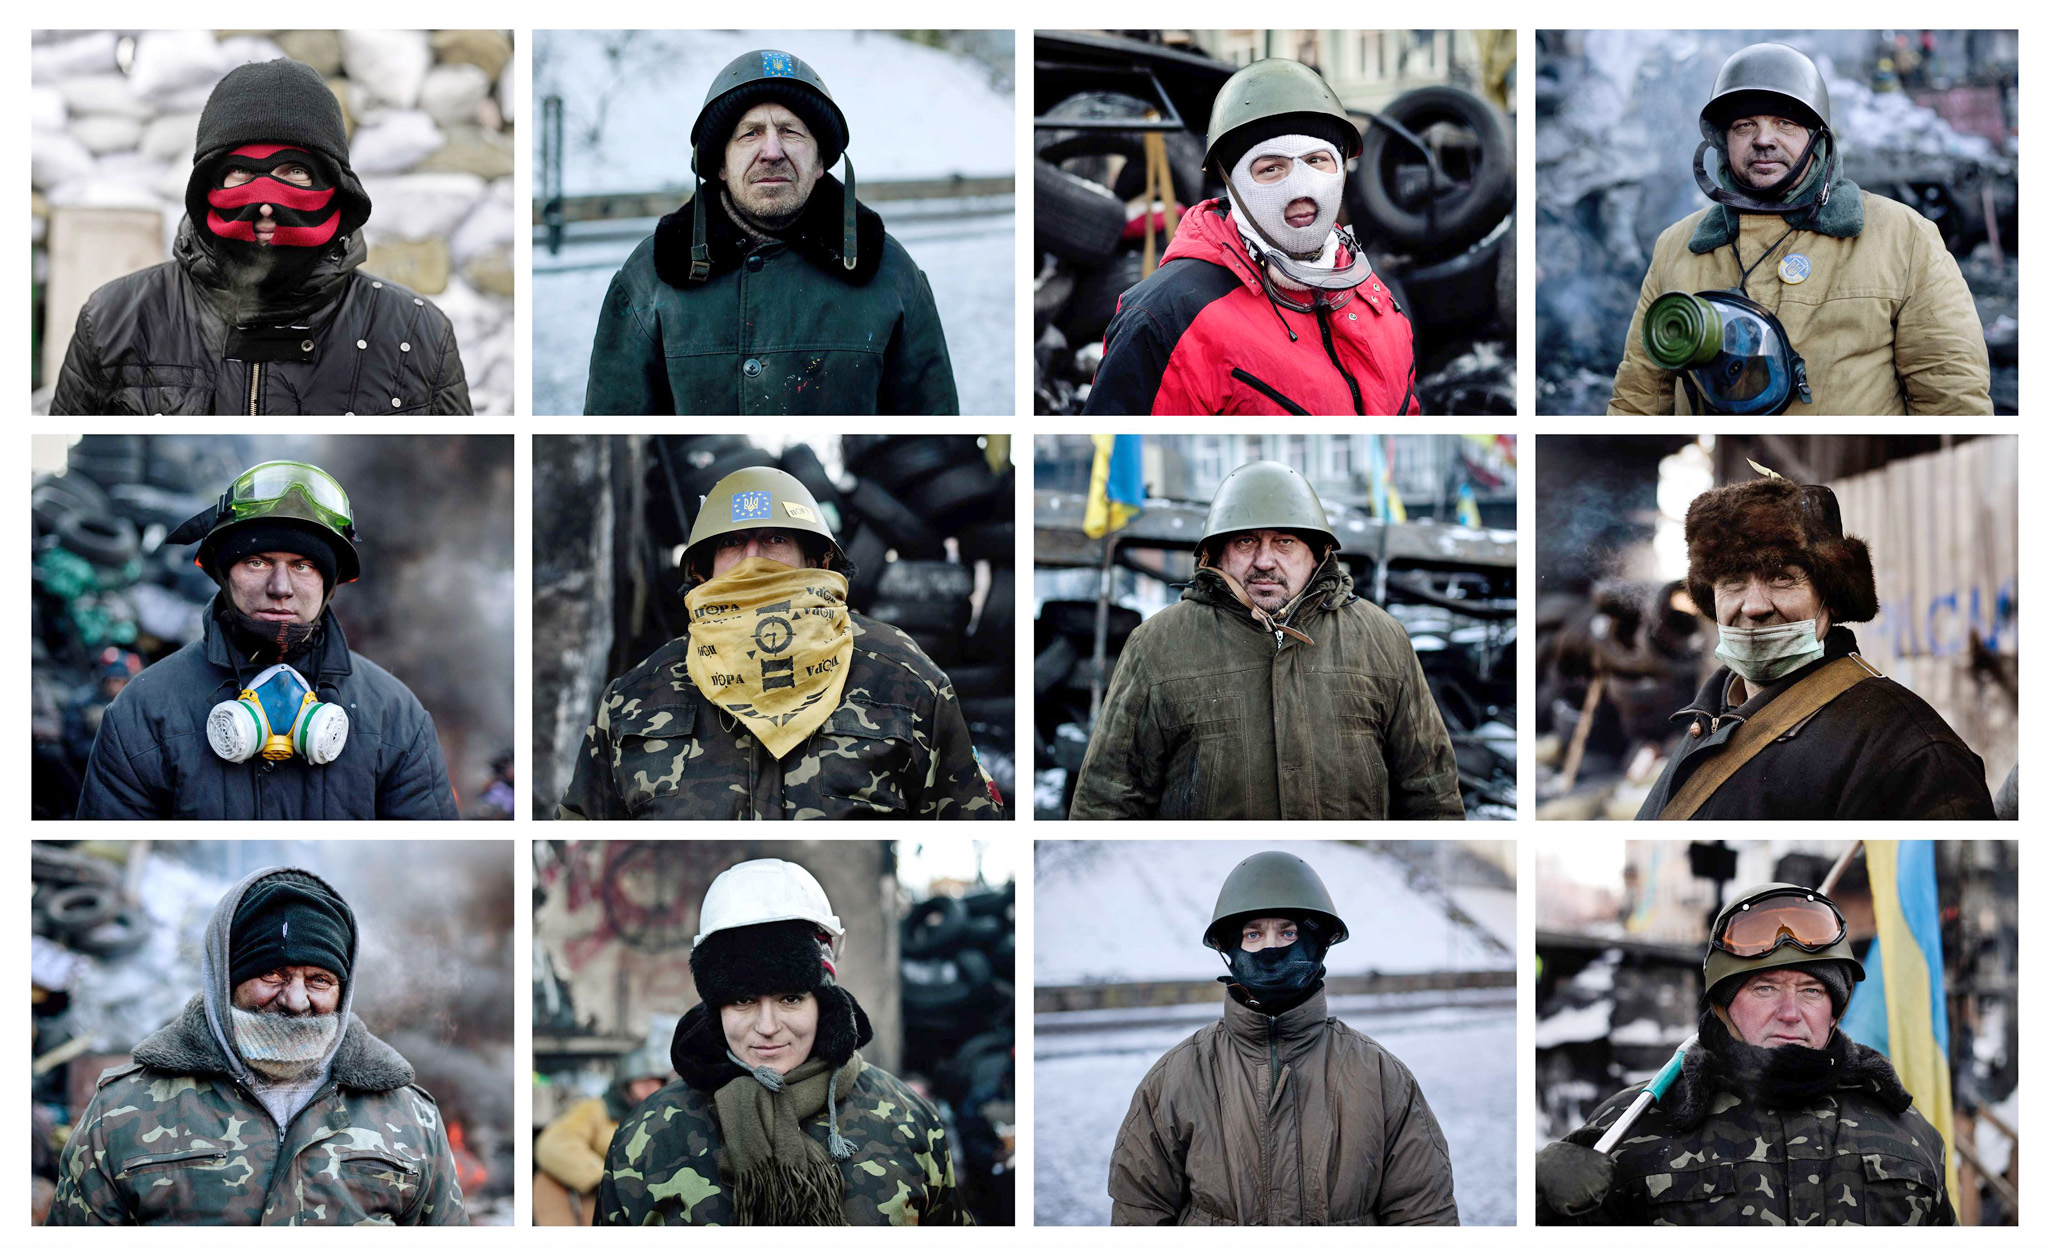 A combination of 16 photos shows portrai...A combination of 16 photos shows portraits of anti-government protesters standing